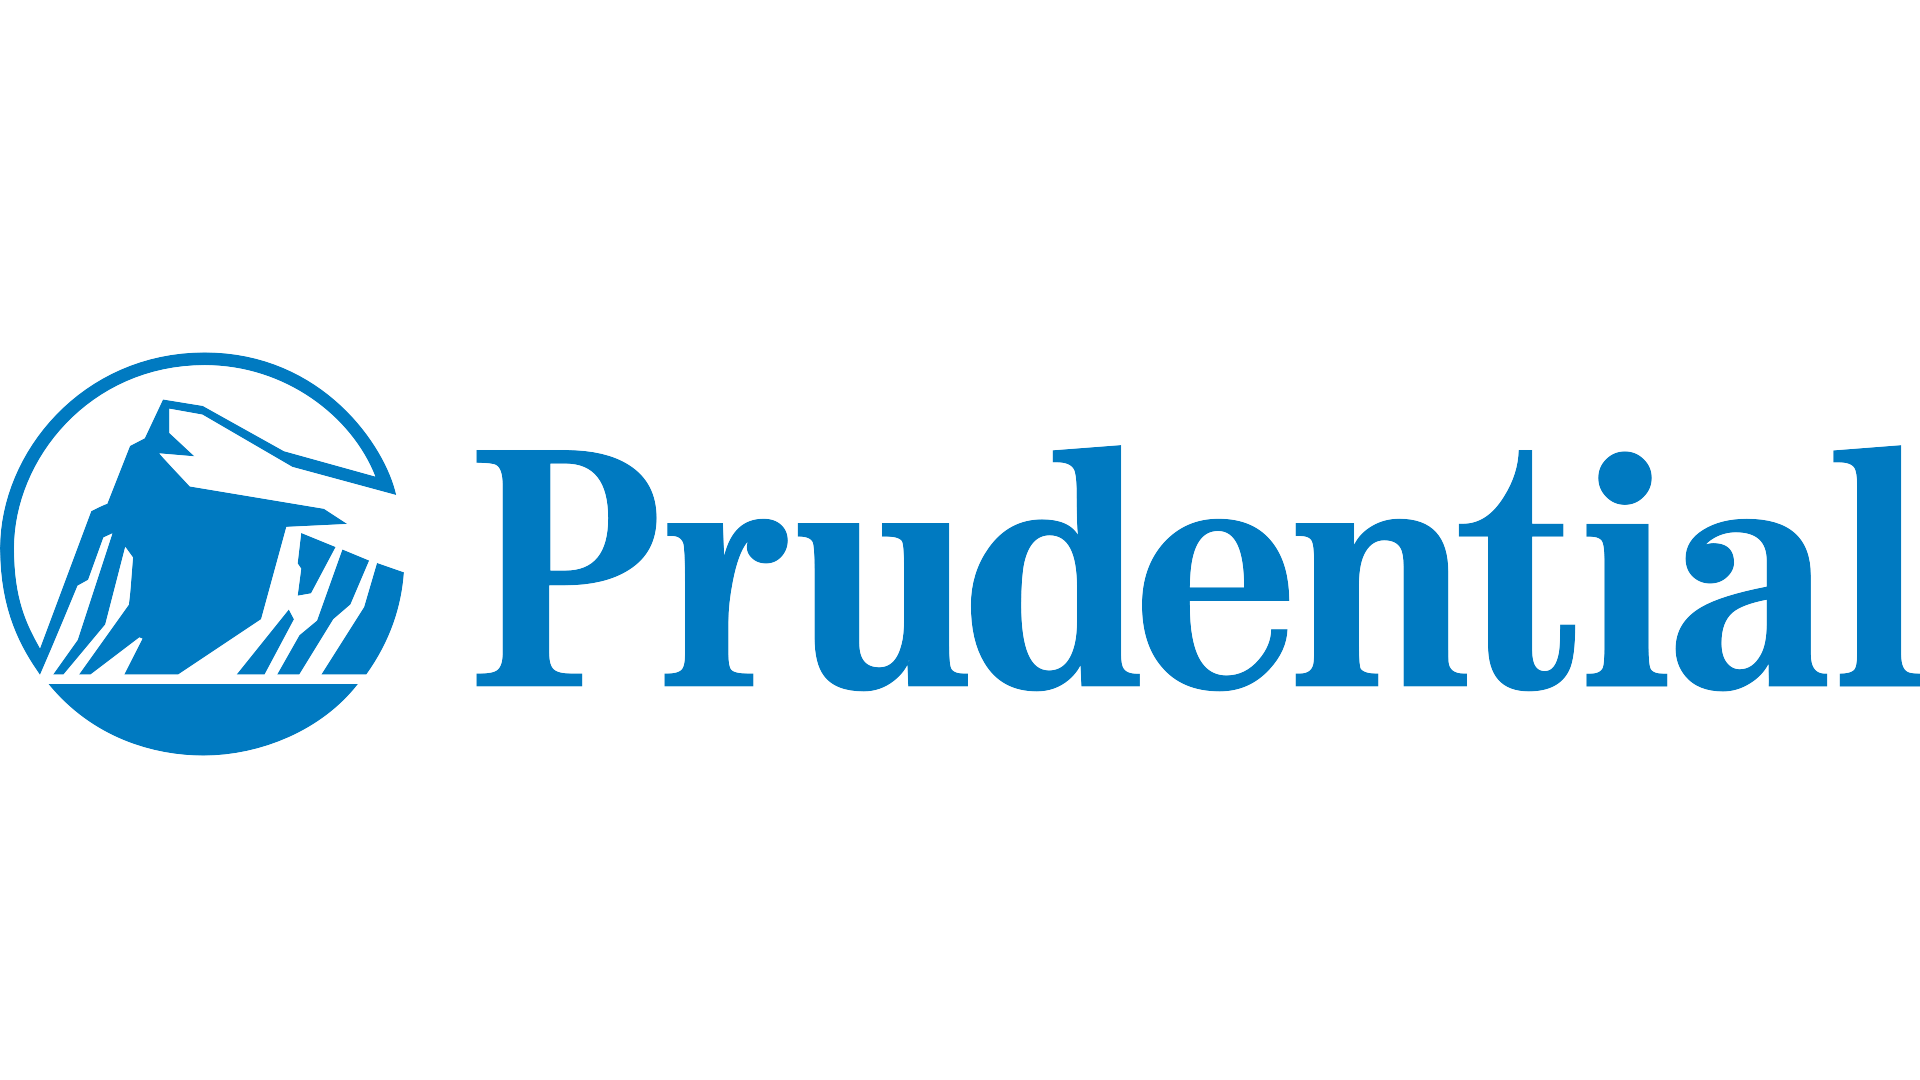 Watch the job video below to learn more about the career opening Our Work, Heart, and Soul at Prudential in Newark,   NJ,   USA